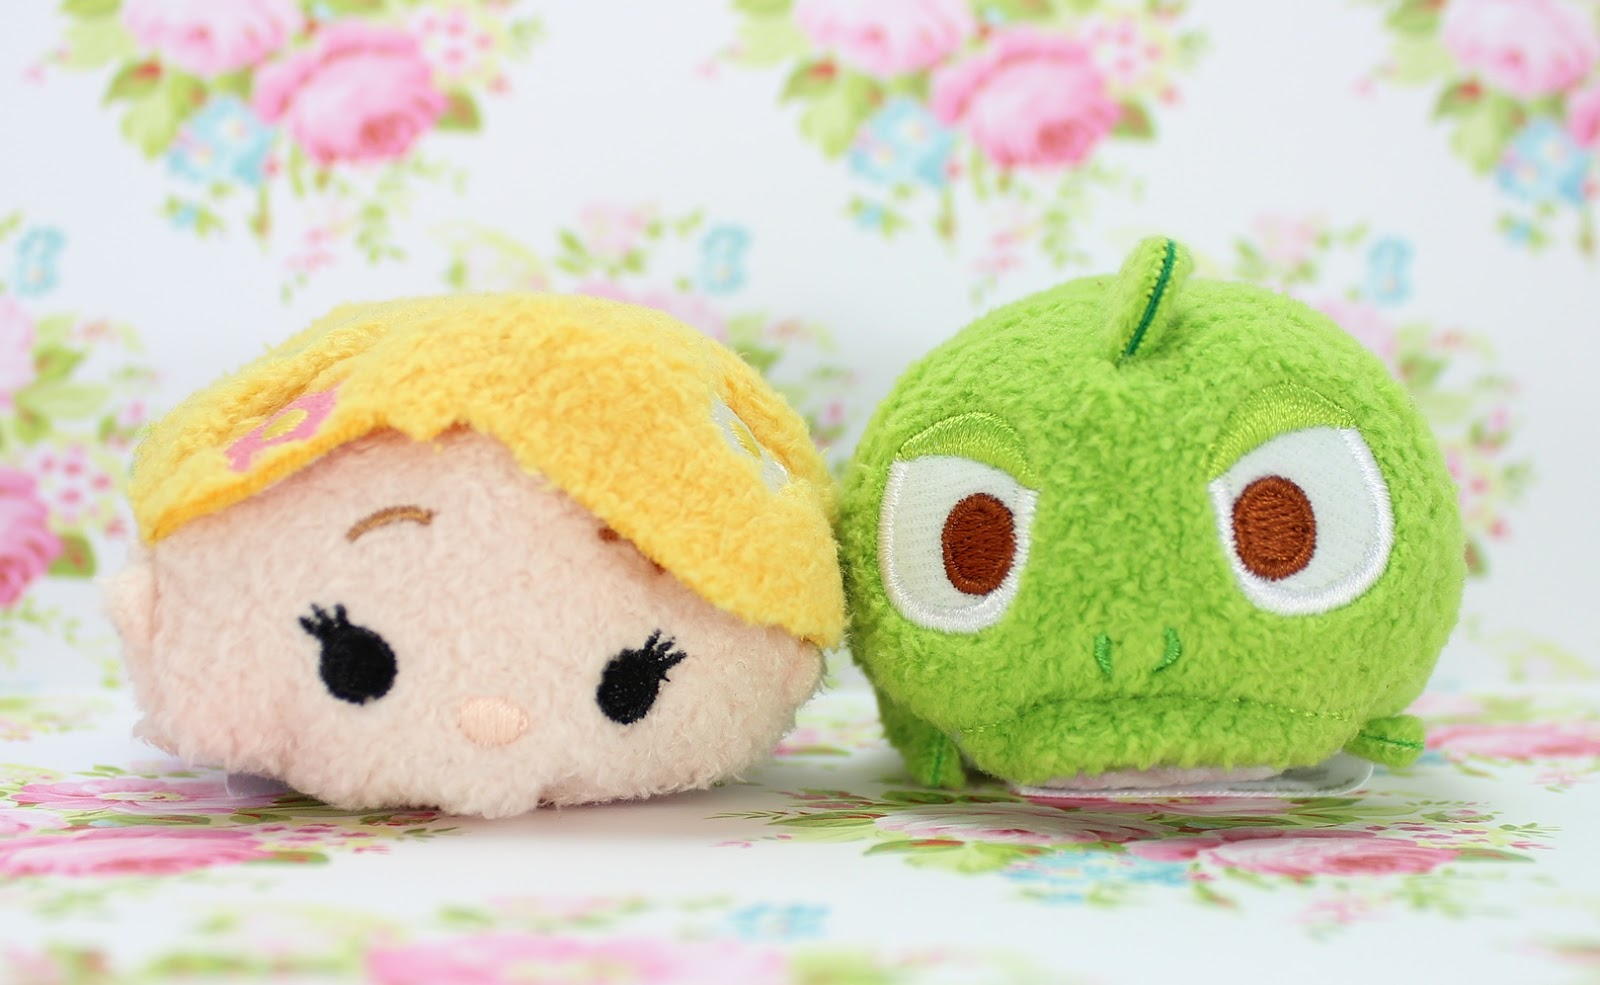 Tangled Tsum Tsums